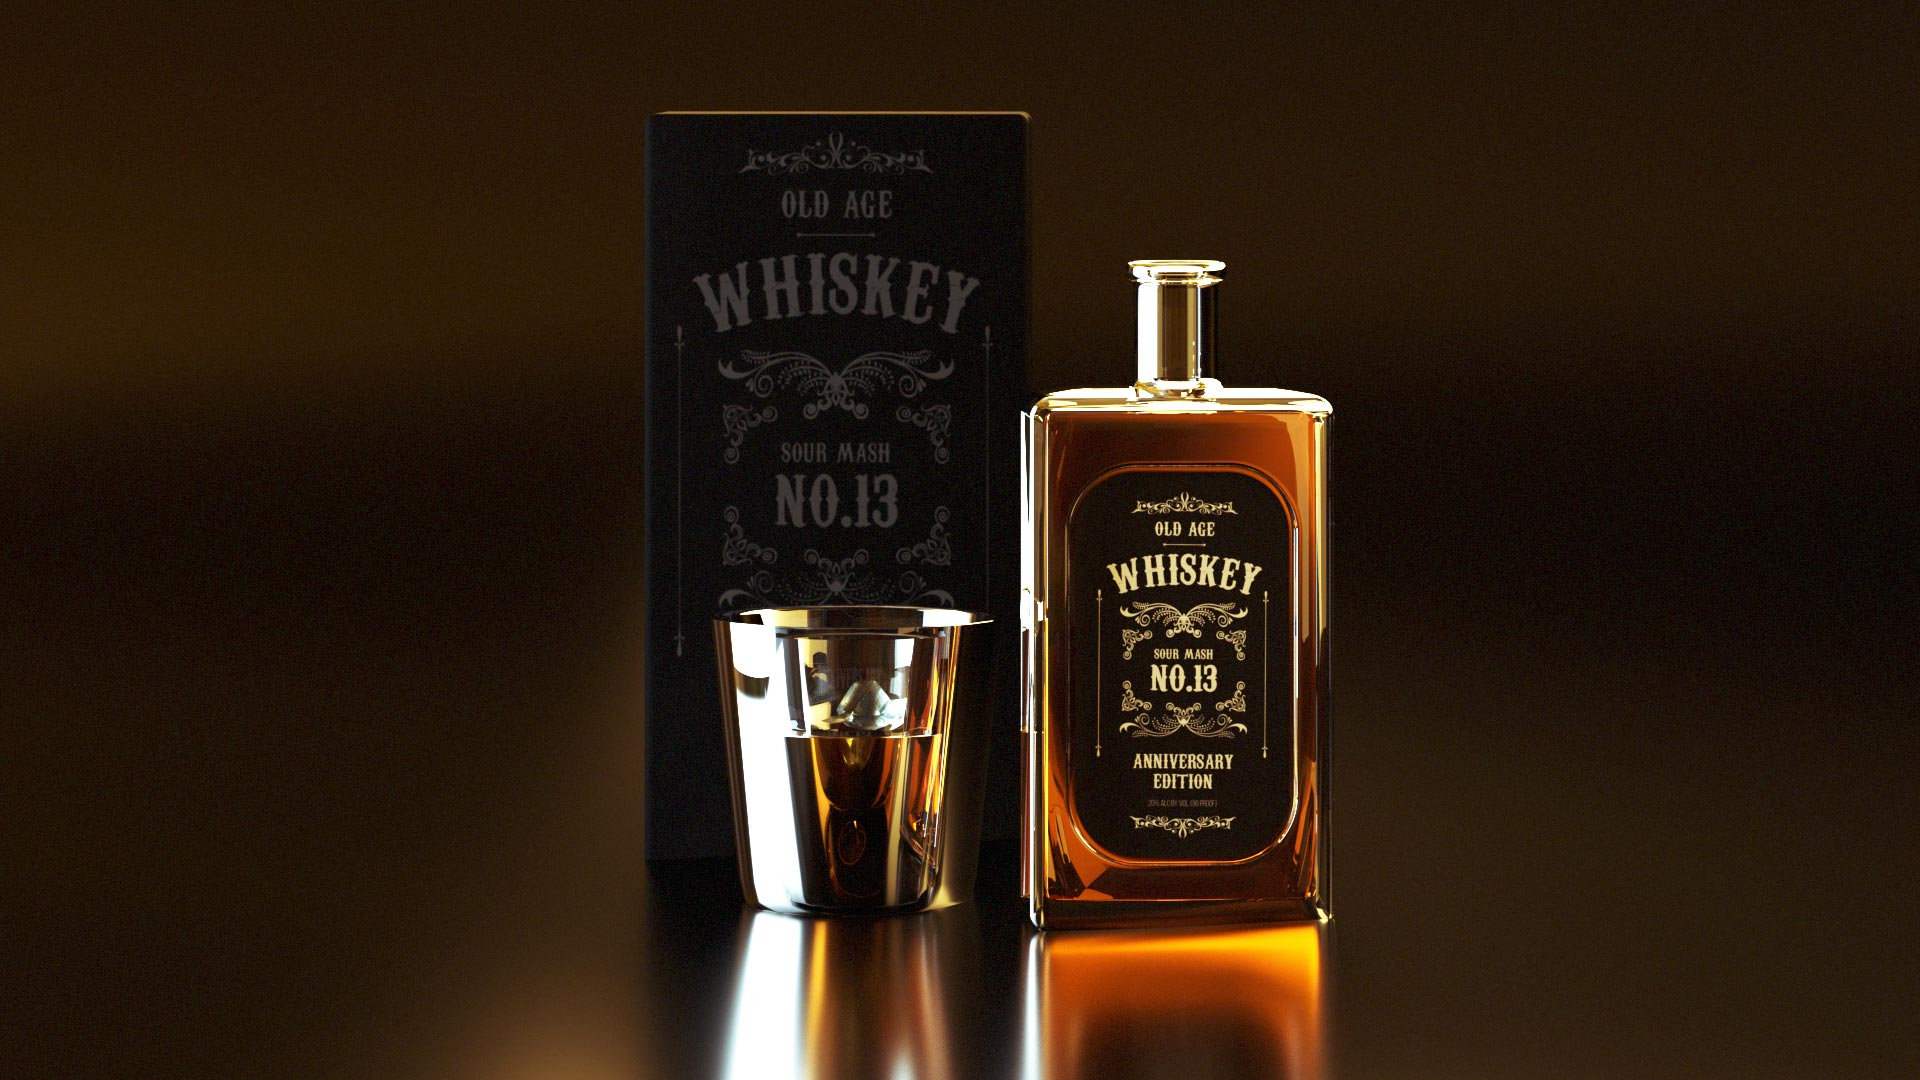 WHISKEY_3D_RENDER_03